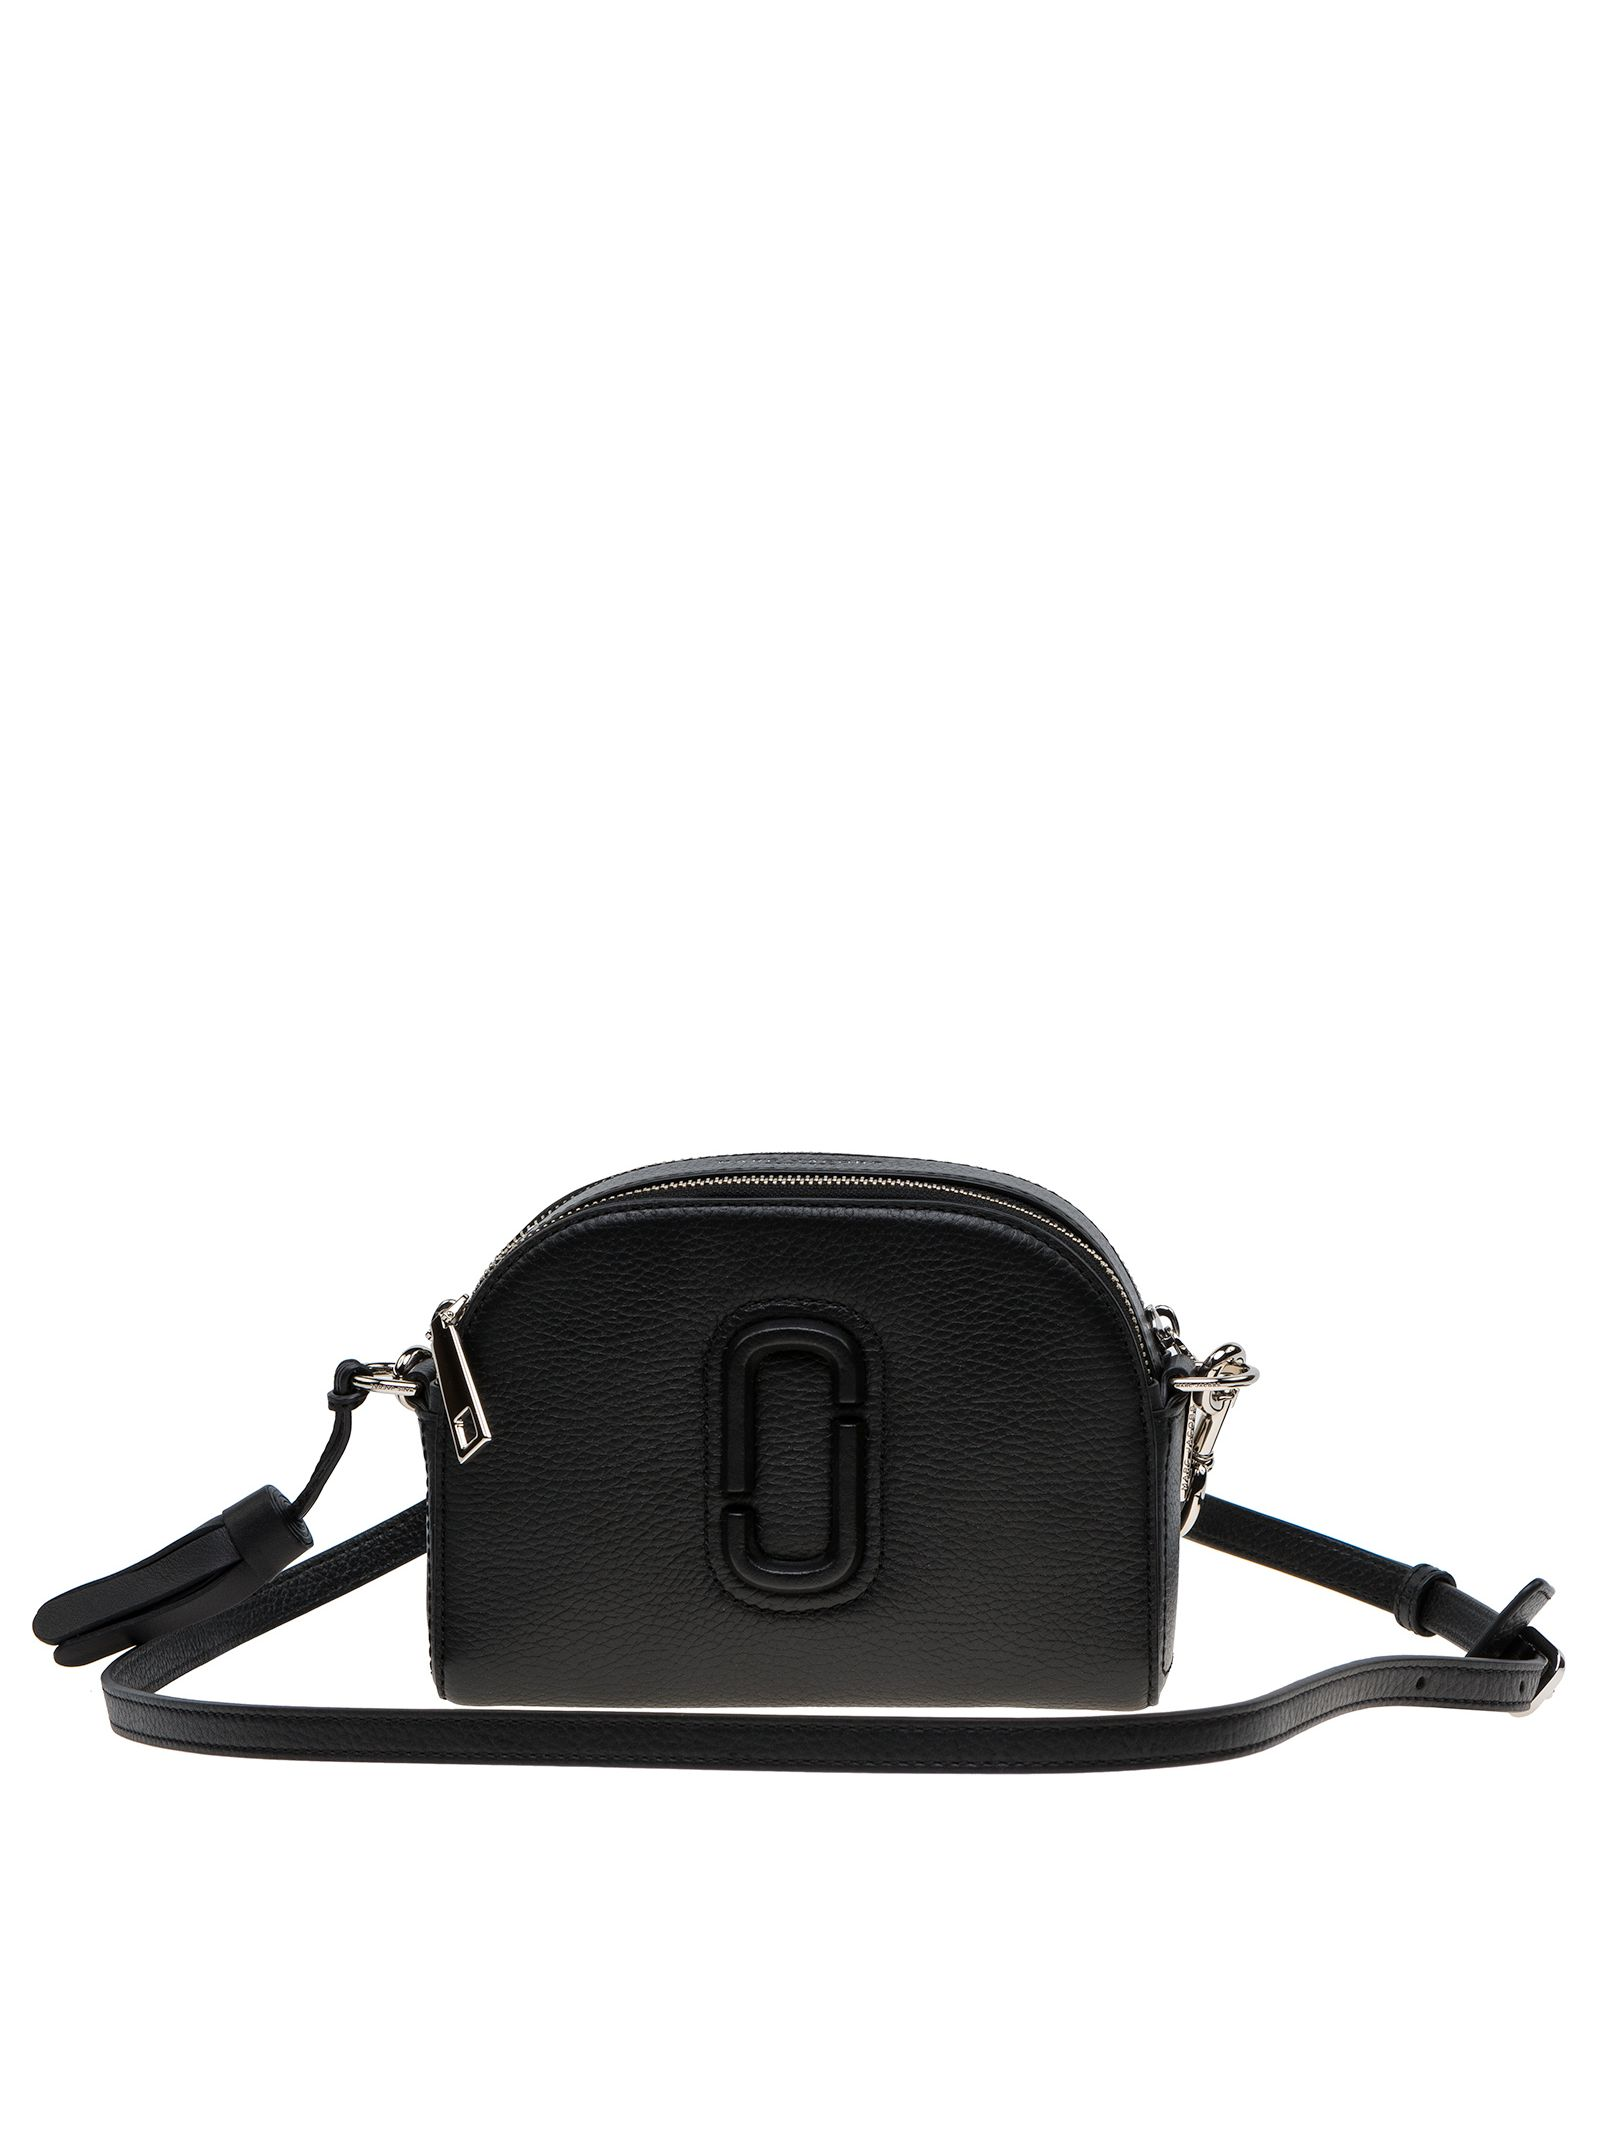 marc jacobs female marc jacobs small shutter camera bag